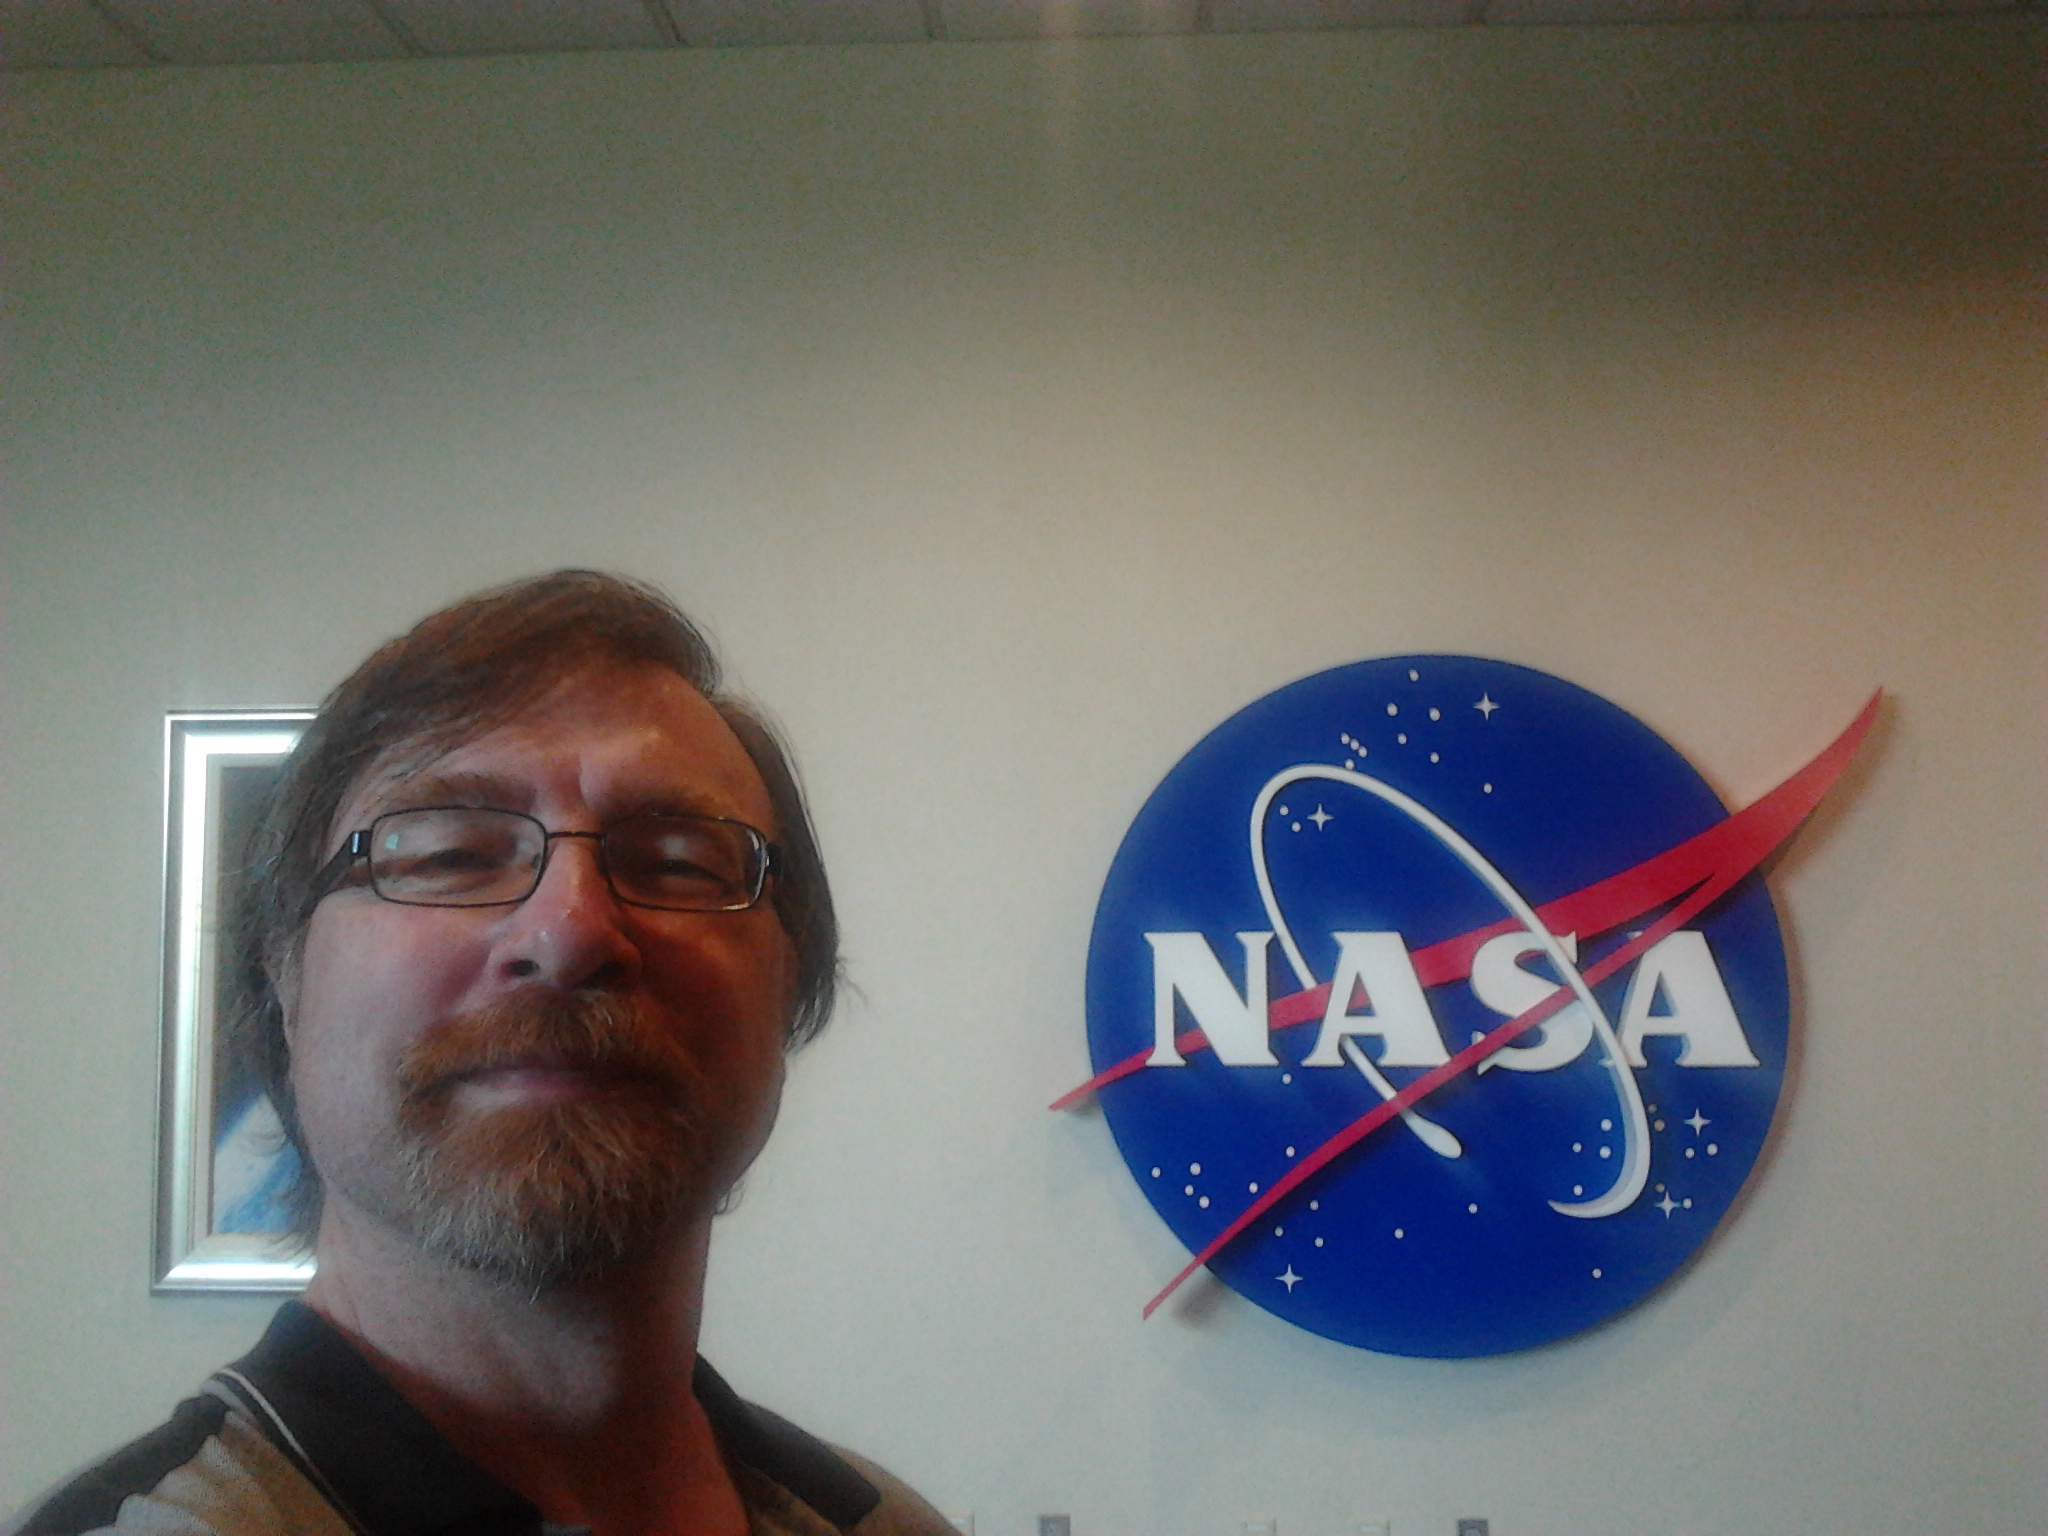 A picture of yours truly Stefano in front of the meatball NASA logo.